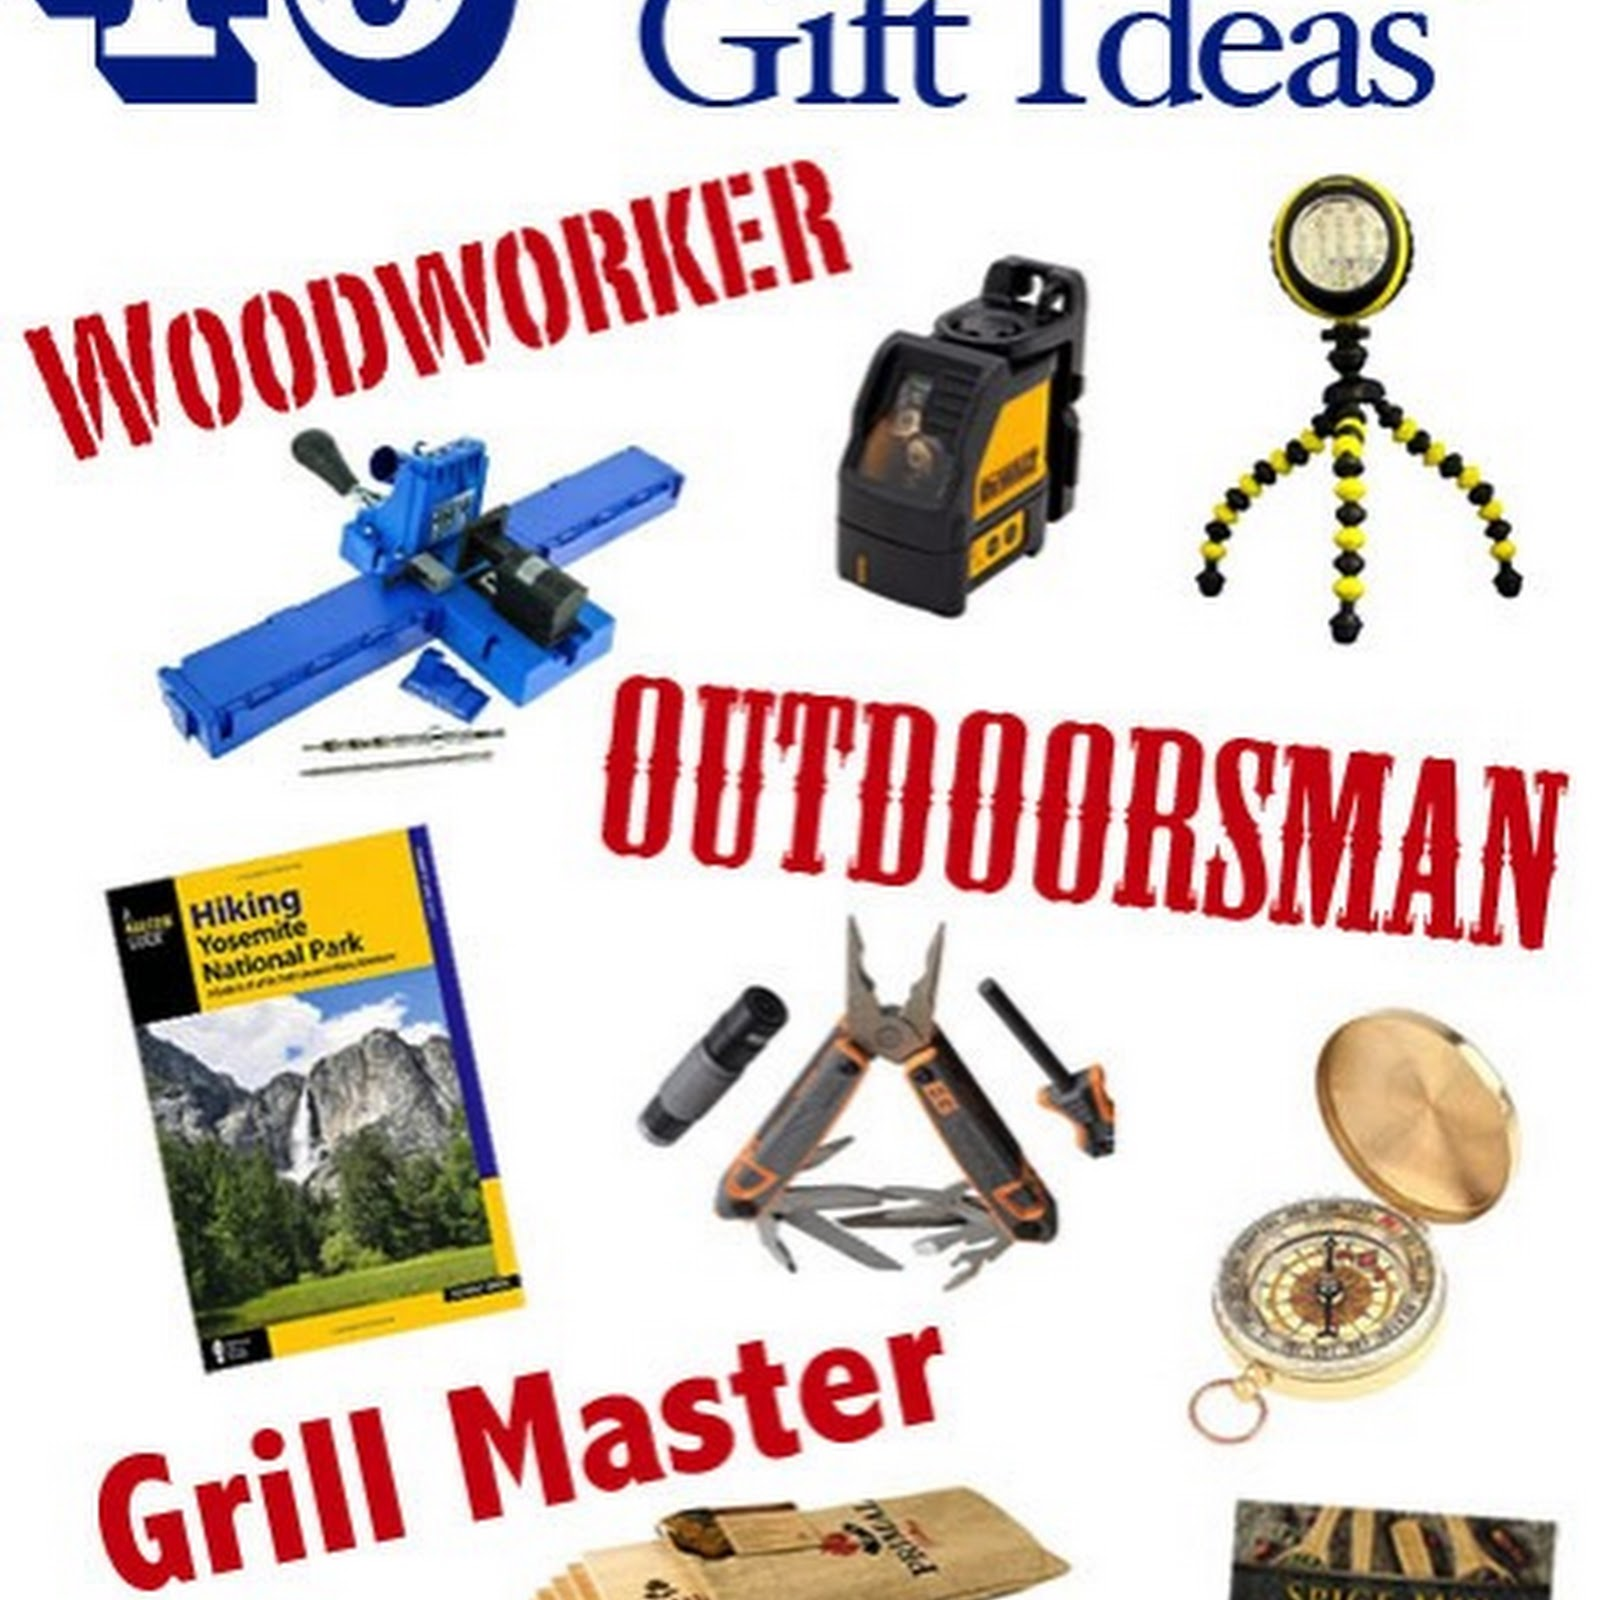 40 Father's Day Gift Ideas: Outdoorsman, Grillmaster, Woodworker, Sports Fan